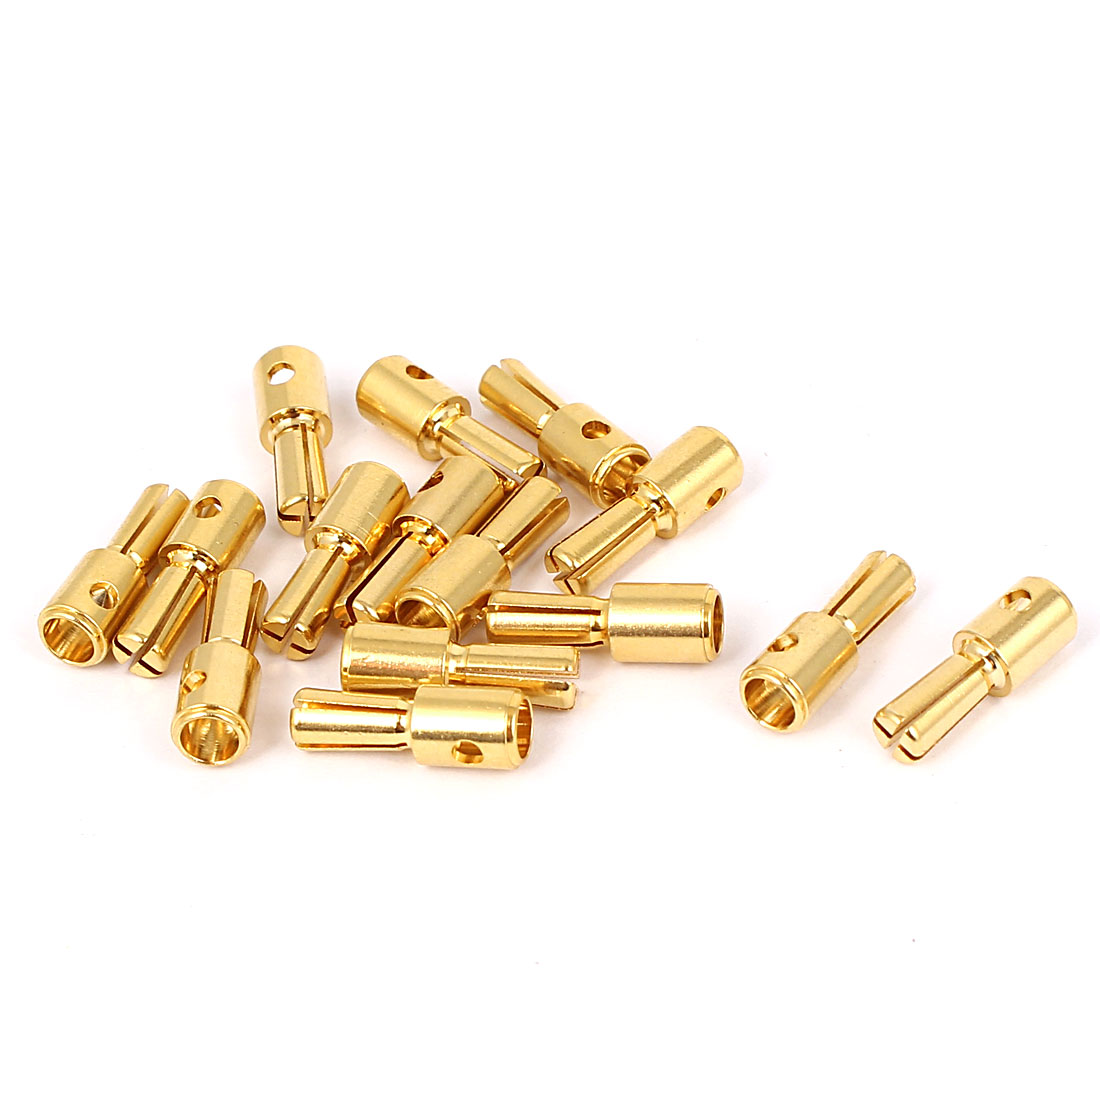 15pcs 4mm Gold Tone Metal Cross Head Banana Male Connector Adapter for RC Model Battery